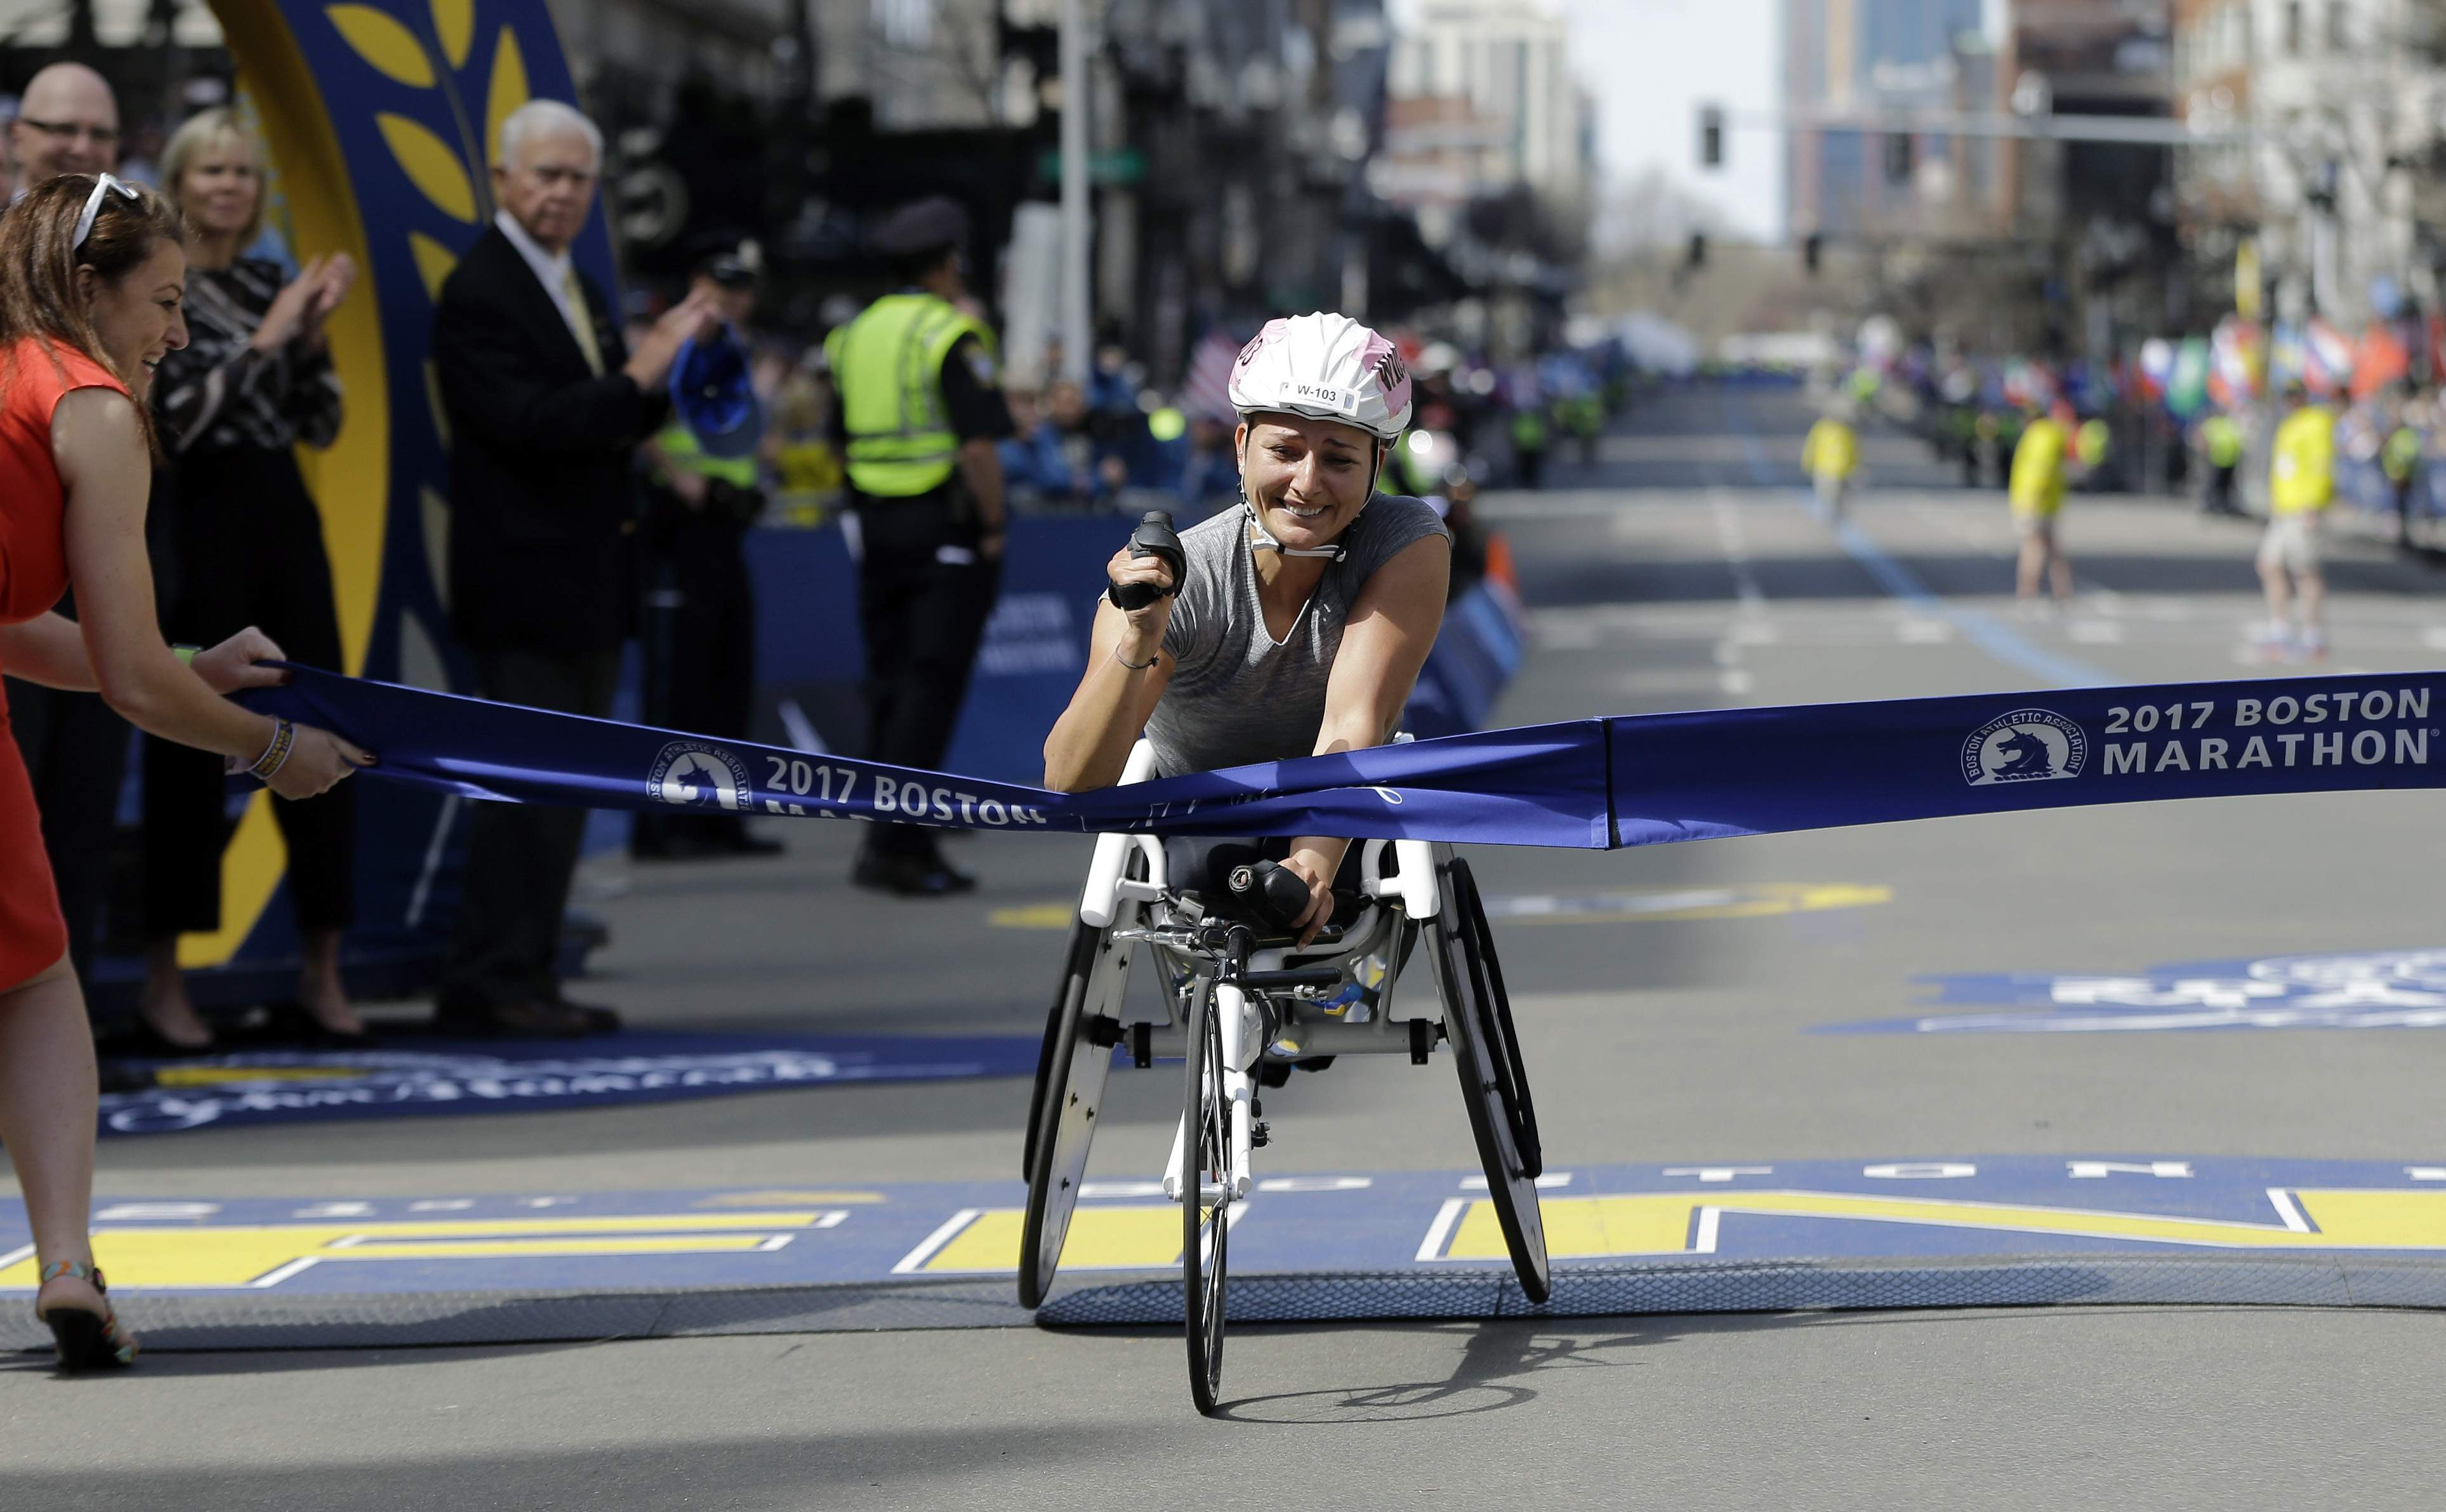 Manuela Schar, of Switzerland, wins the women's wheelchair division in the 121st Boston Marathon on Monday, April 17, 2017, in Boston. THE ASSOCIATED PRESS